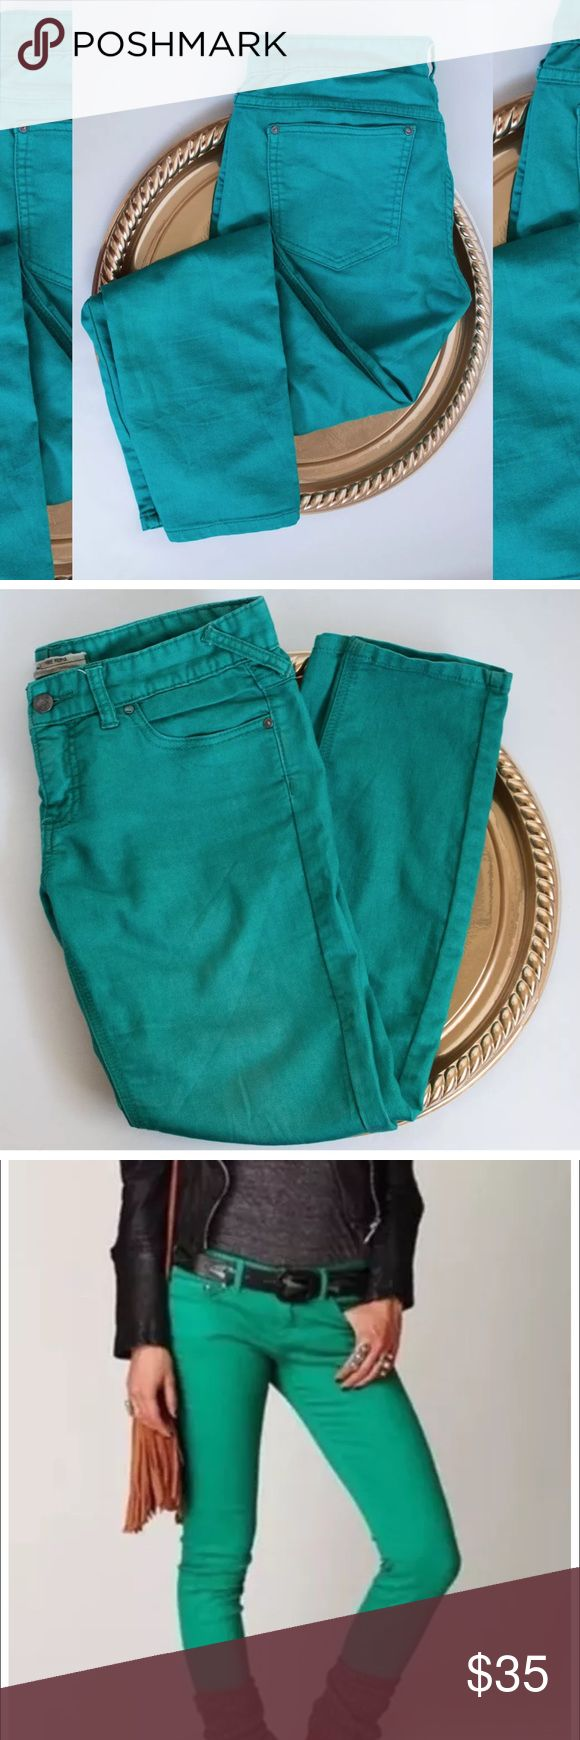 Free People 5 Pocket Skinny Jean Excellent condition Free People skinny jeans. Absolutely amazing color. Perfect for Spring! Photo on model shows accurate color. Thanks for looking! Free People Jeans Skinny